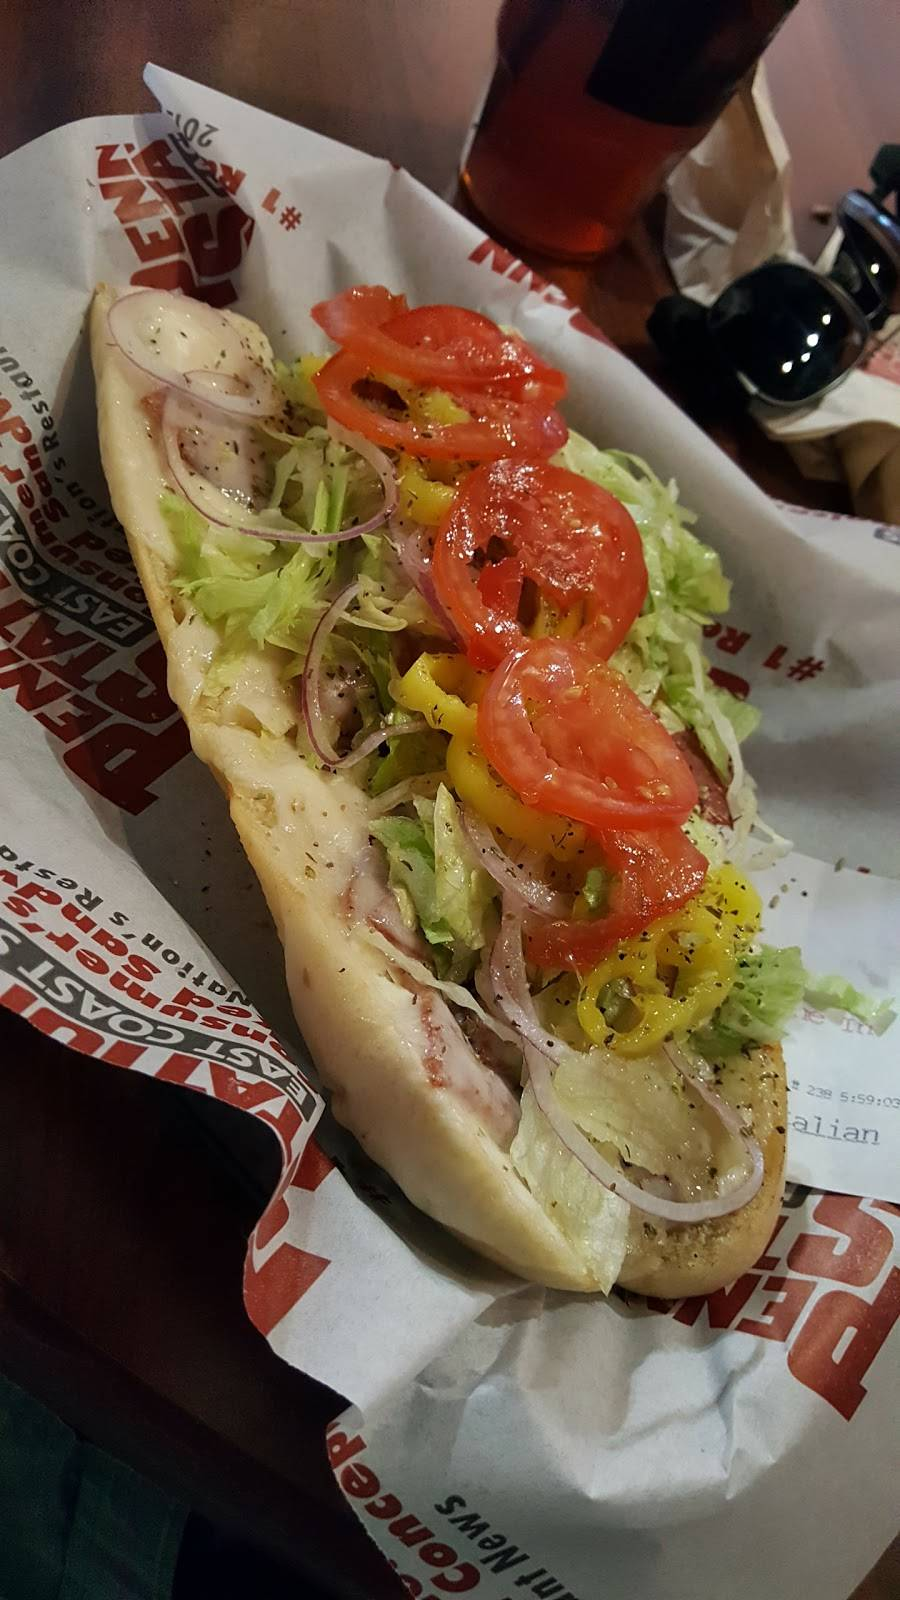 Penn Station East Coast Subs | meal takeaway | 2012 Cherry Rd C, Rock Hill, SC 29732, USA | 8033667366 OR +1 803-366-7366